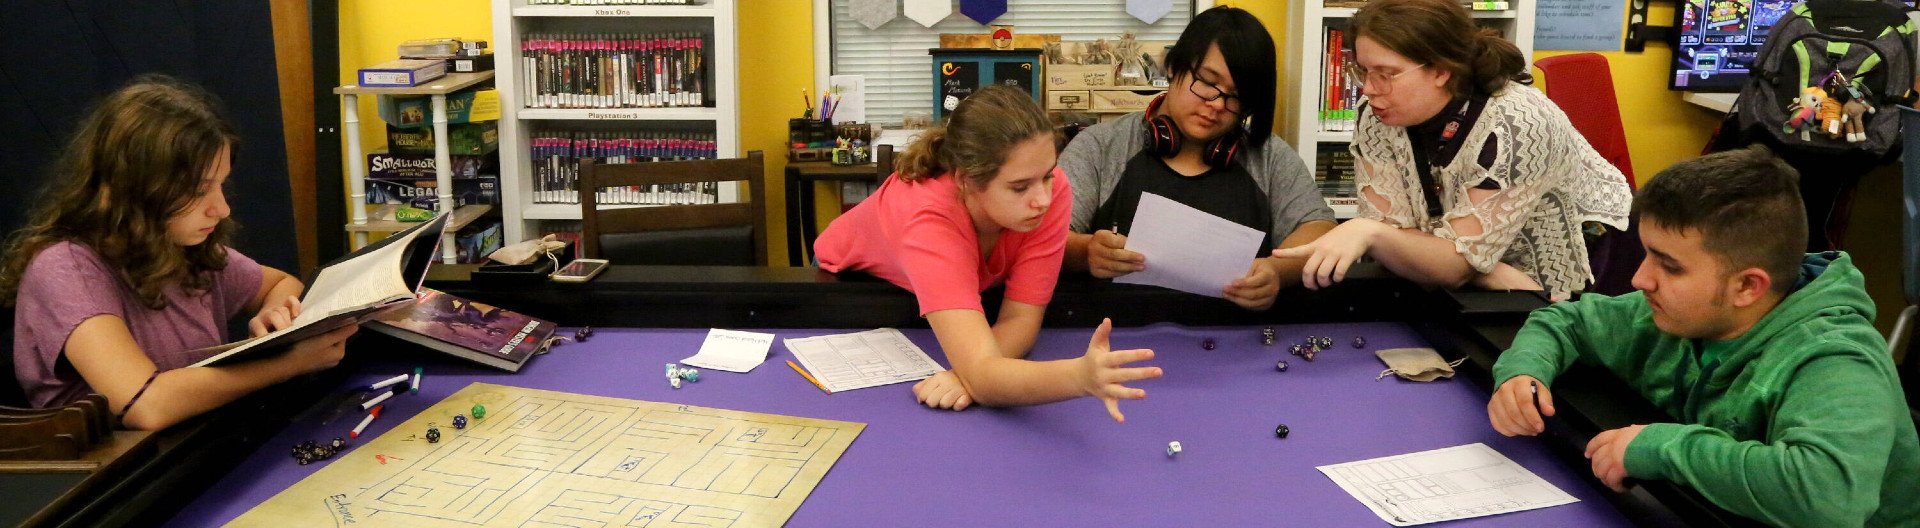 October 17, 2019, Palm Harbor, Florida, USA: From left: Justine Miller, 13, Rebecca Miller, 13, Ty Tran, 14, Samma Fagan (librarian) and Jarod Layliev, 15, (all) of Palm Harbor, play a game of Dungeons & Dragons at the new Mark Mazurek Gaming Center